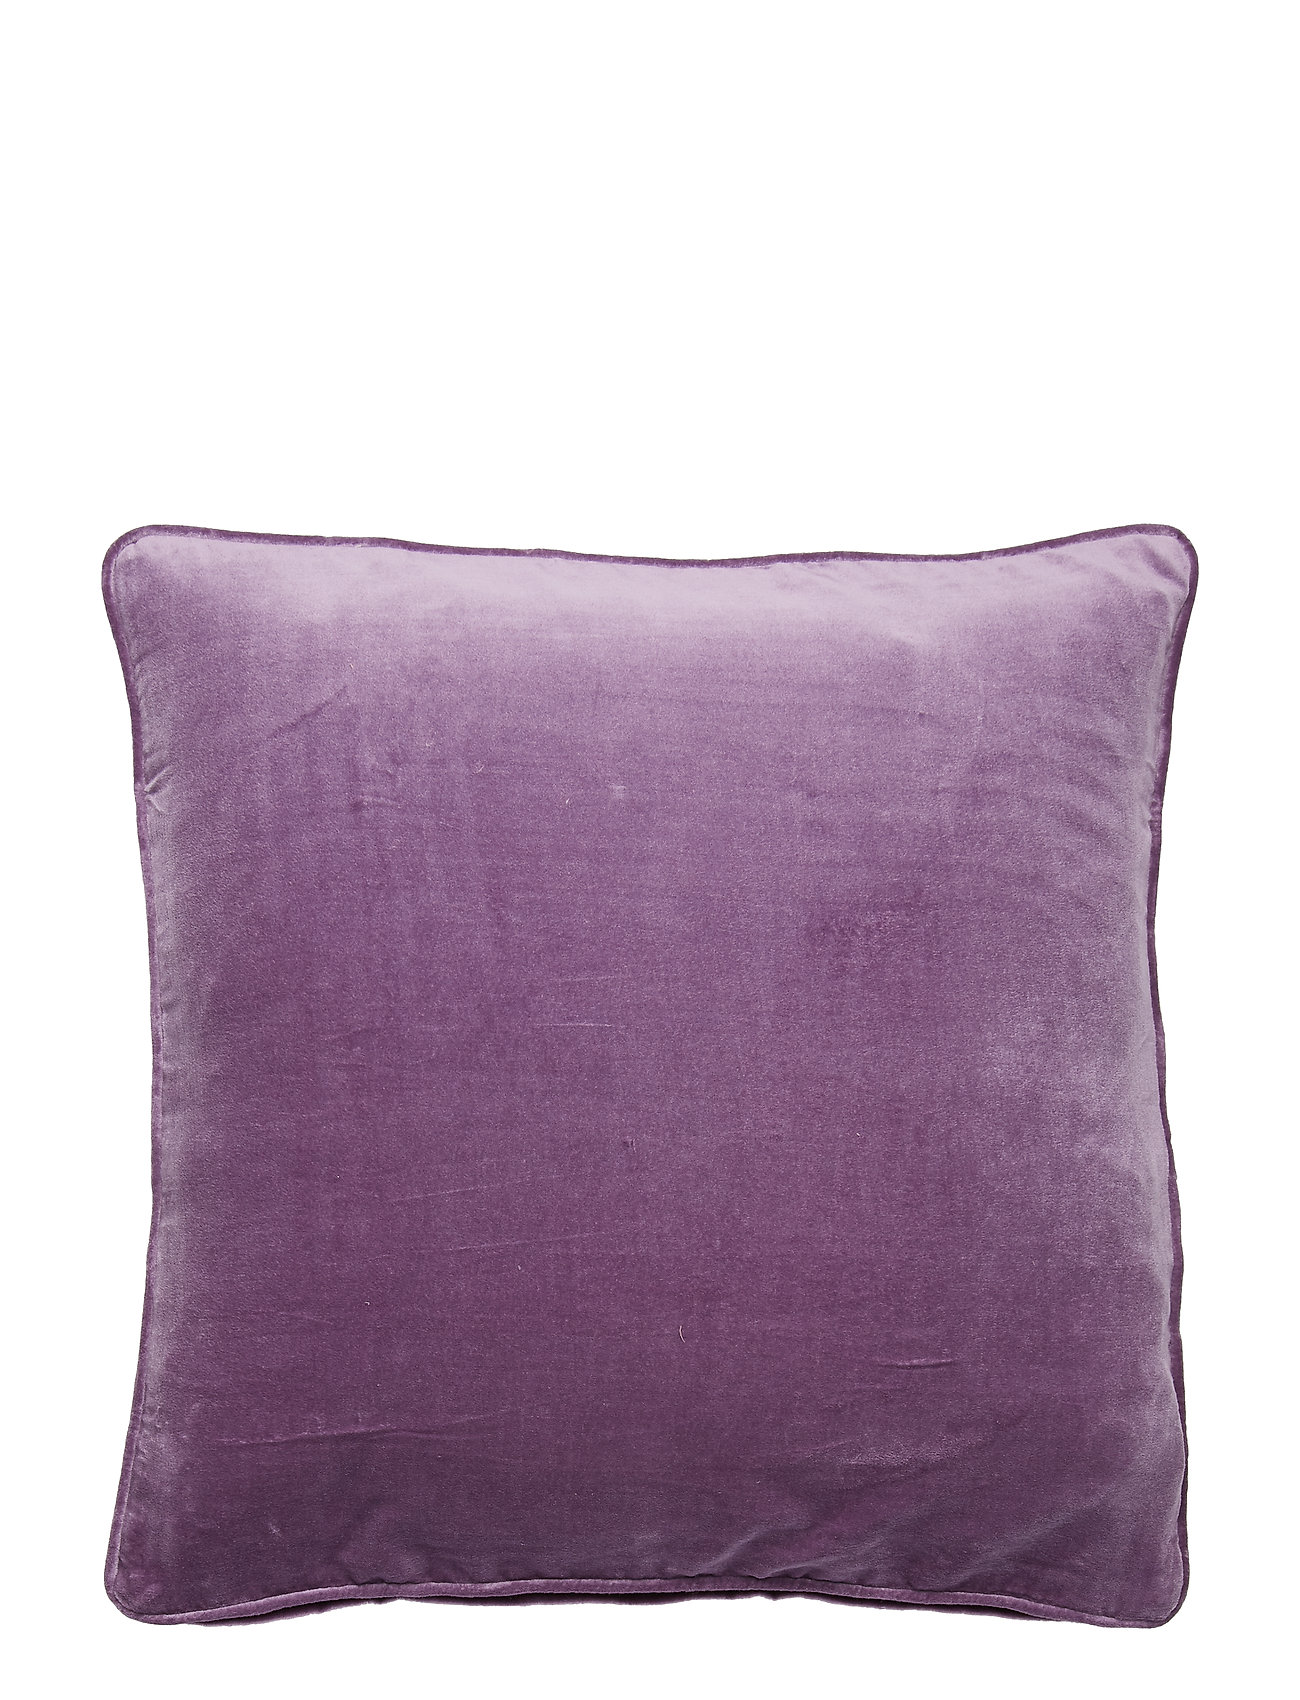 DAY Home Day Cushion Classic Velvet Lilac - LILAC